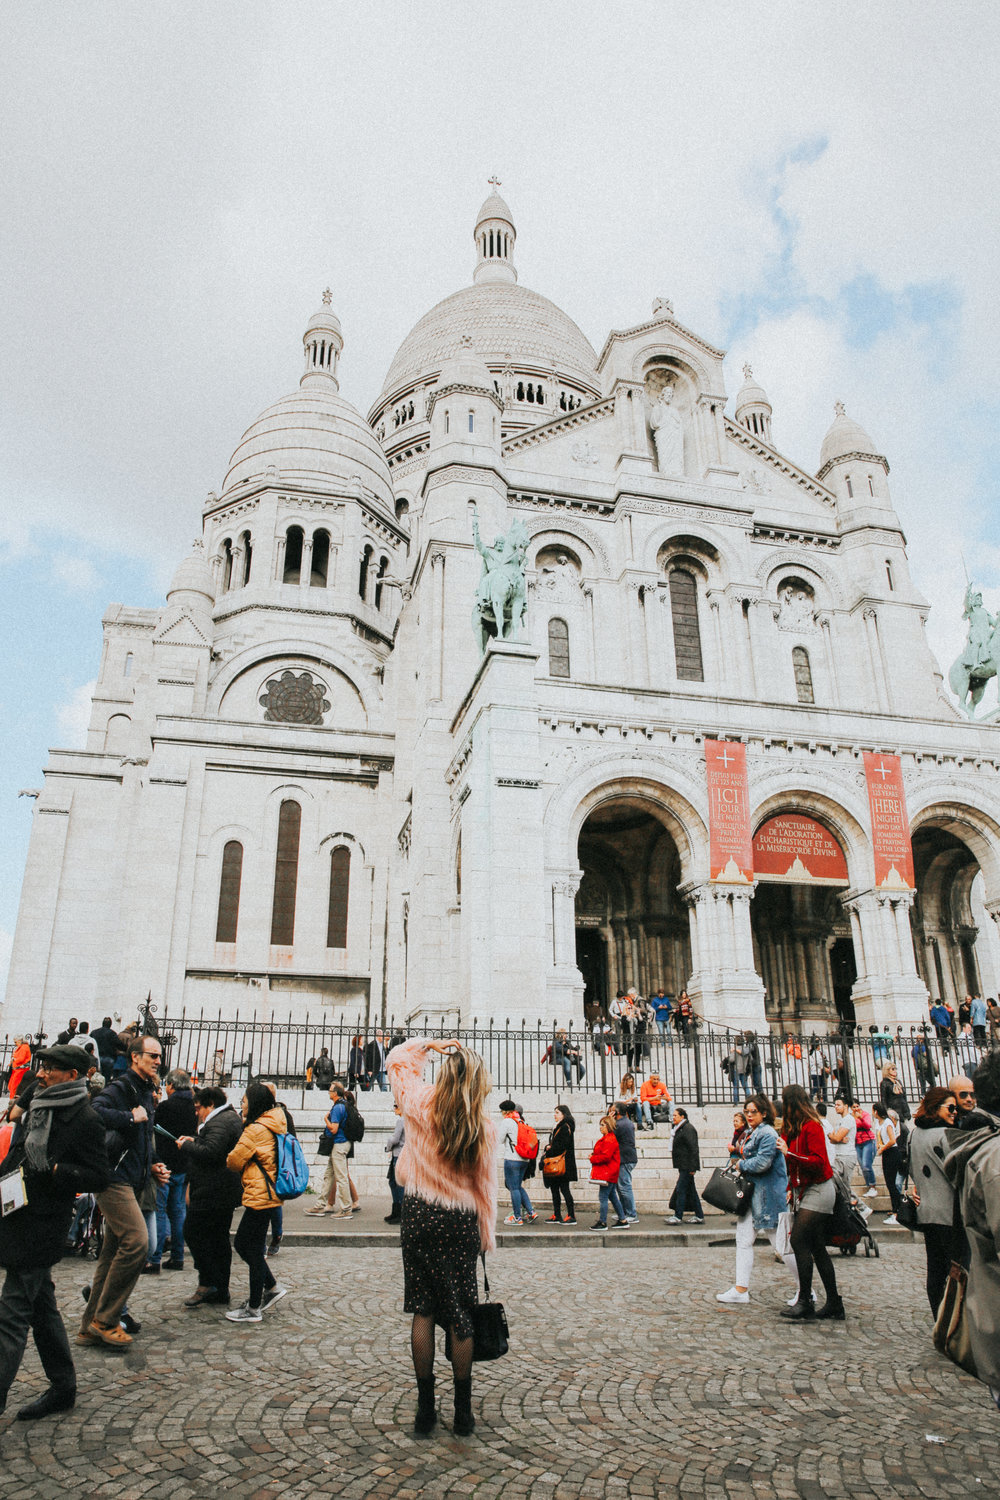 Visiting the Sacre Coeur church in Monmartre